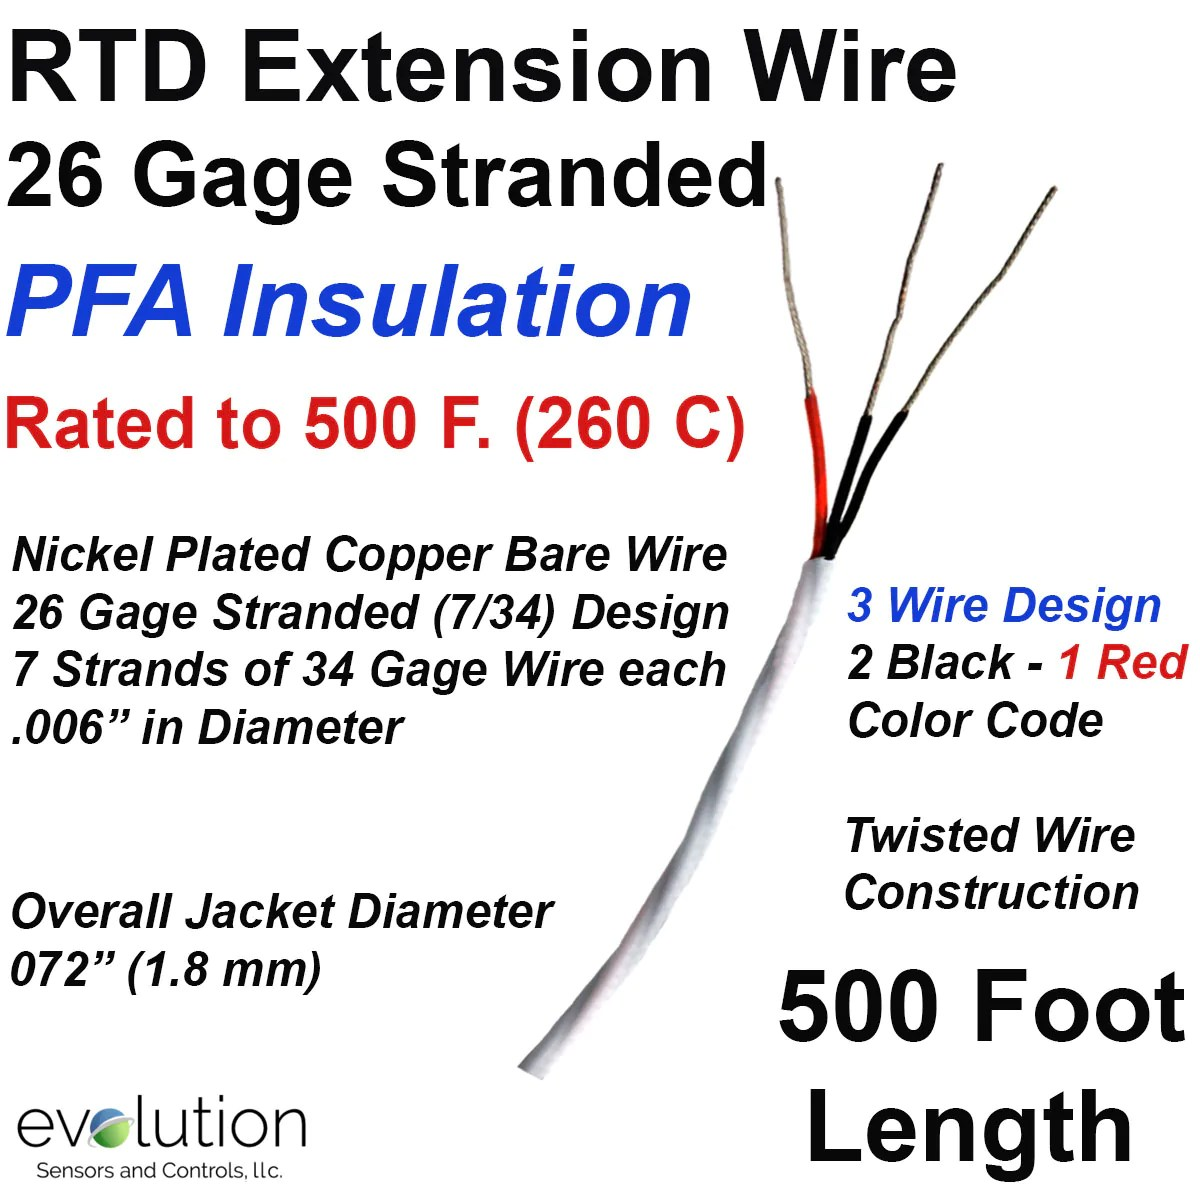 rtd extension wire 500 foot length 26 gage stranded 3 wire design type j thermocouple wire color rtd wiring color code [ 1200 x 1200 Pixel ]